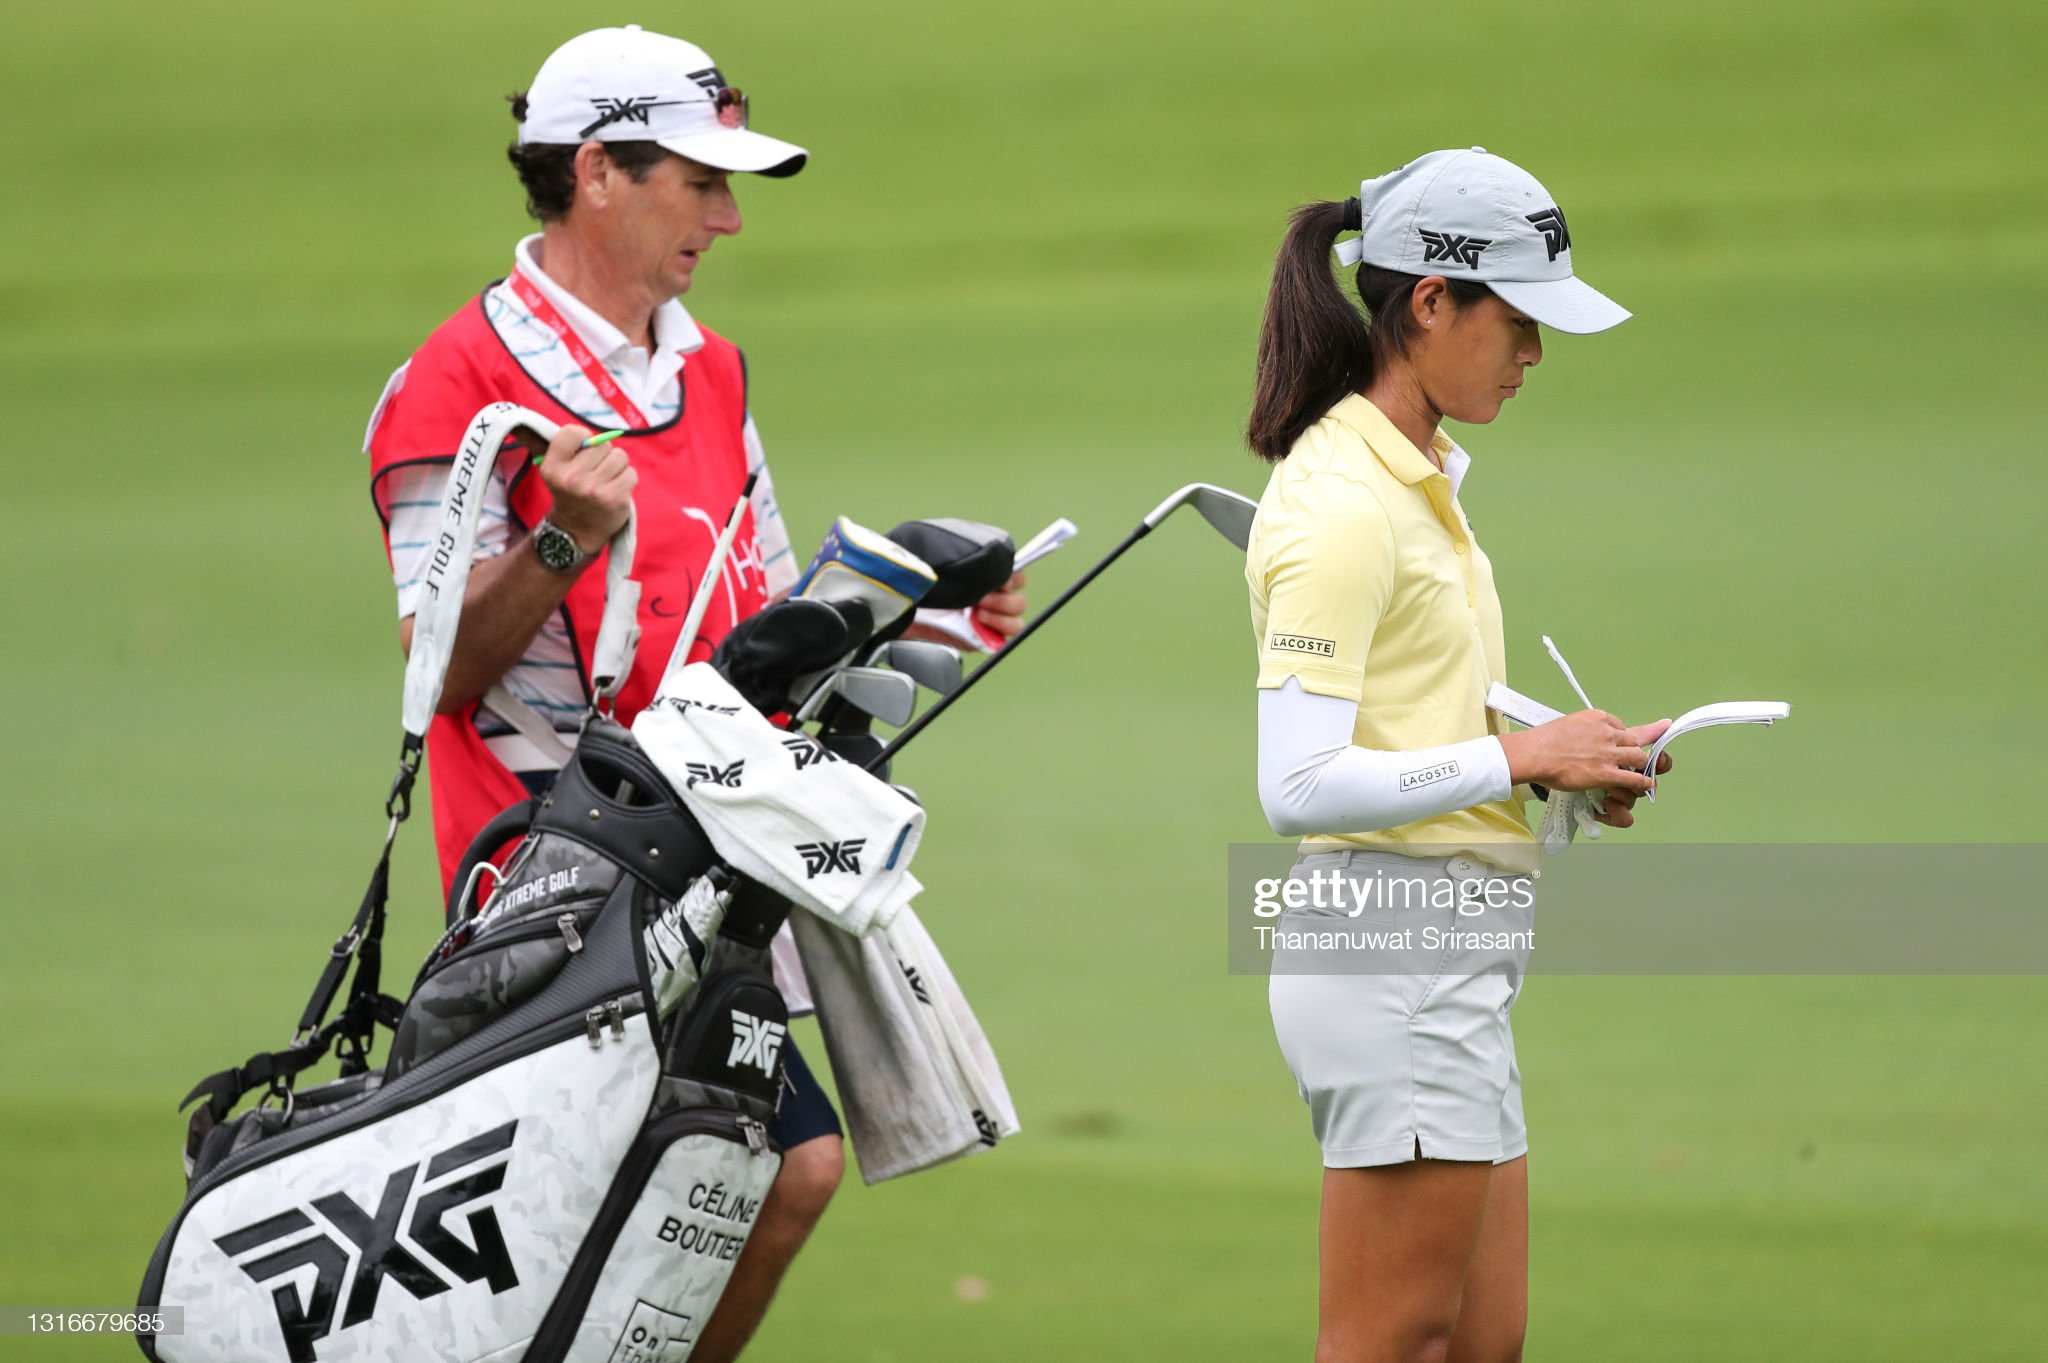 https://media.gettyimages.com/photos/celine-boutier-of-france-takes-notes-during-the-first-round-of-the-picture-id1316679685?s=2048x2048